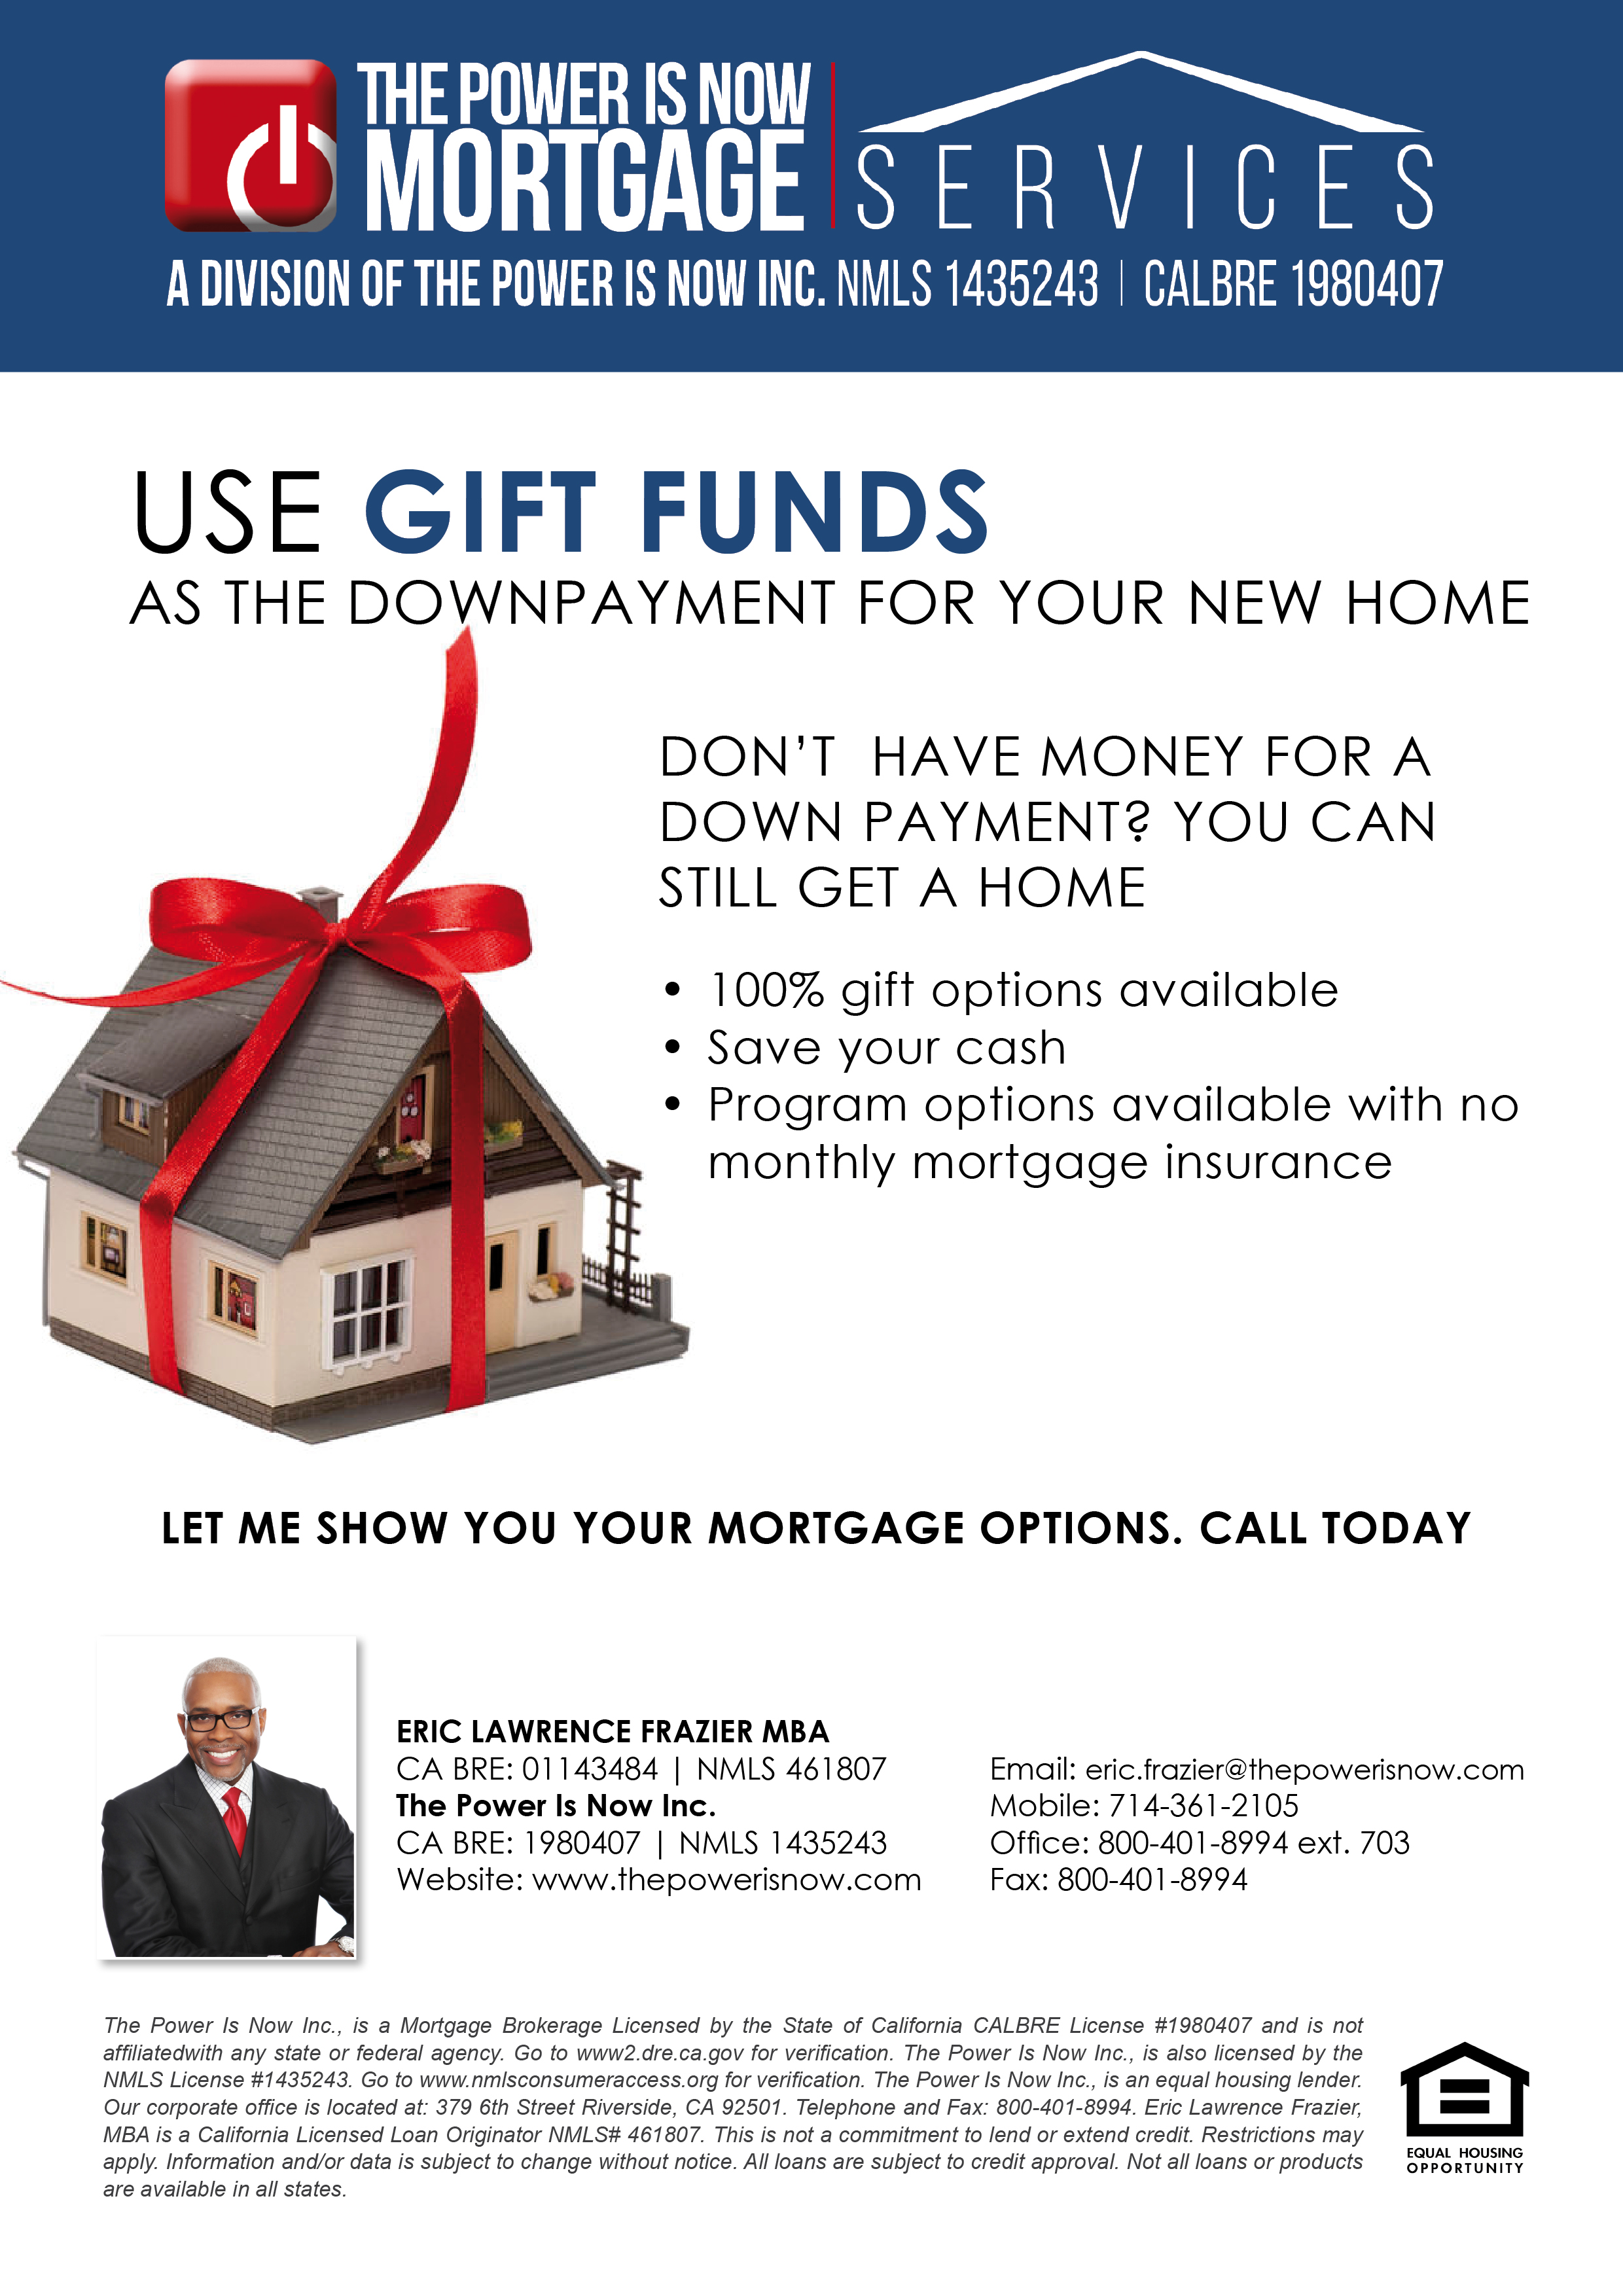 Use gift funds for your new home